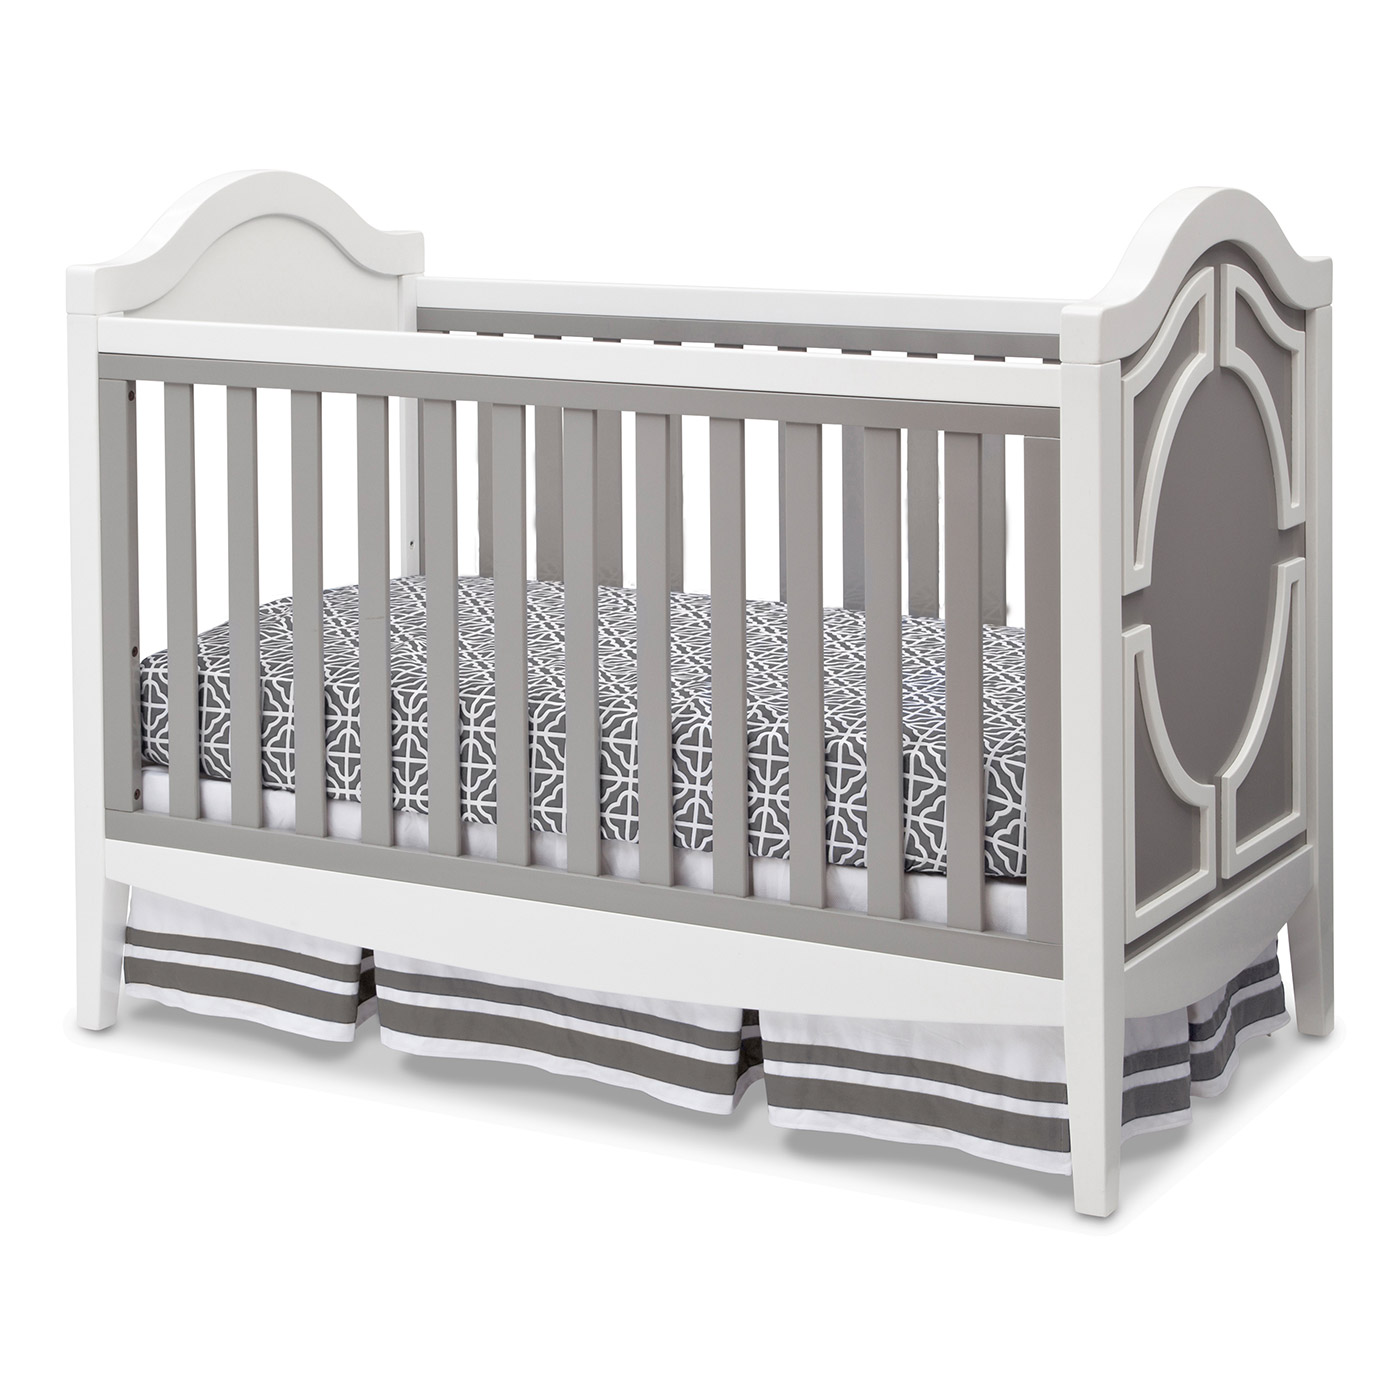 gray simplybabyfurniture baby crib furniture